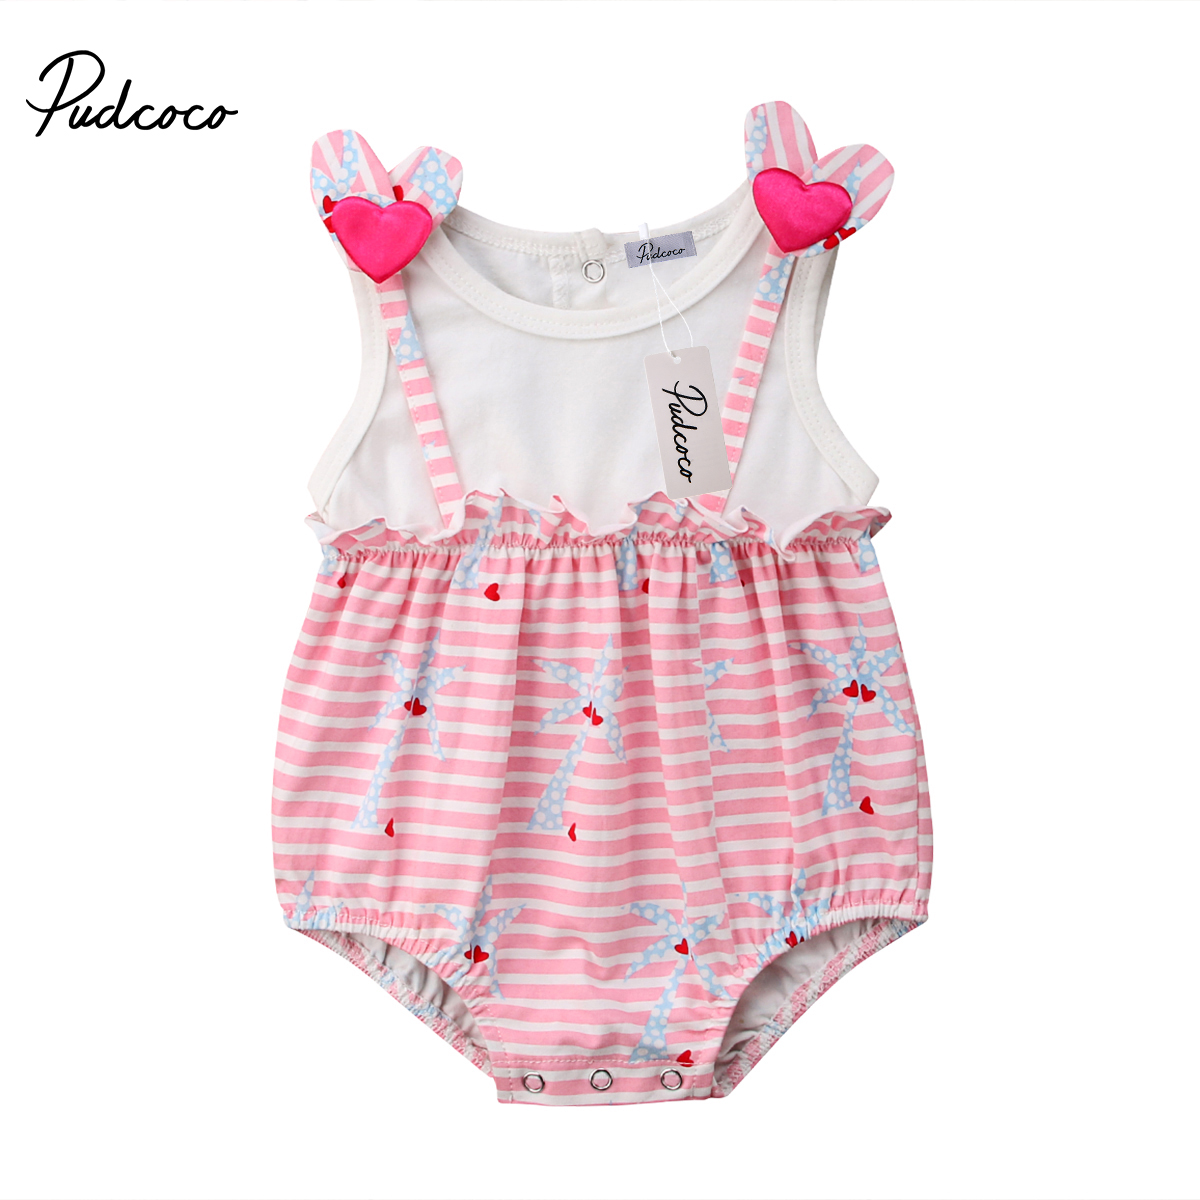 New Fashion Newborn Baby Girl Clothes Stripe   Romper   Sleeveless Jumpsuit Outfit Sunsuits Clothes